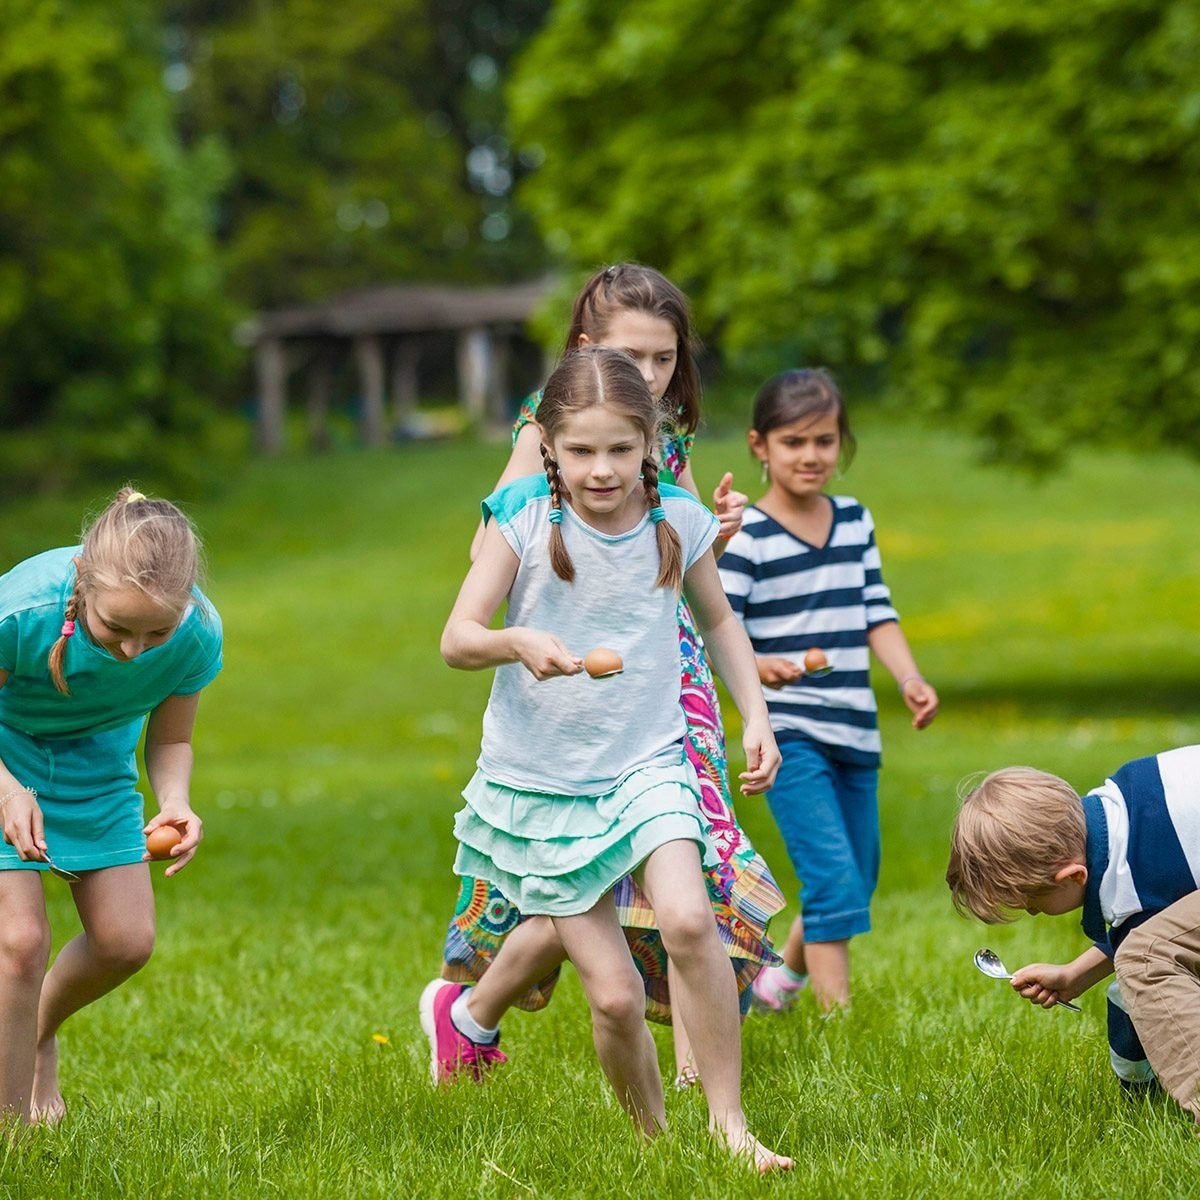 Group of children competing in an egg-and-spoon race in a park, Munich, Bavaria, Germany